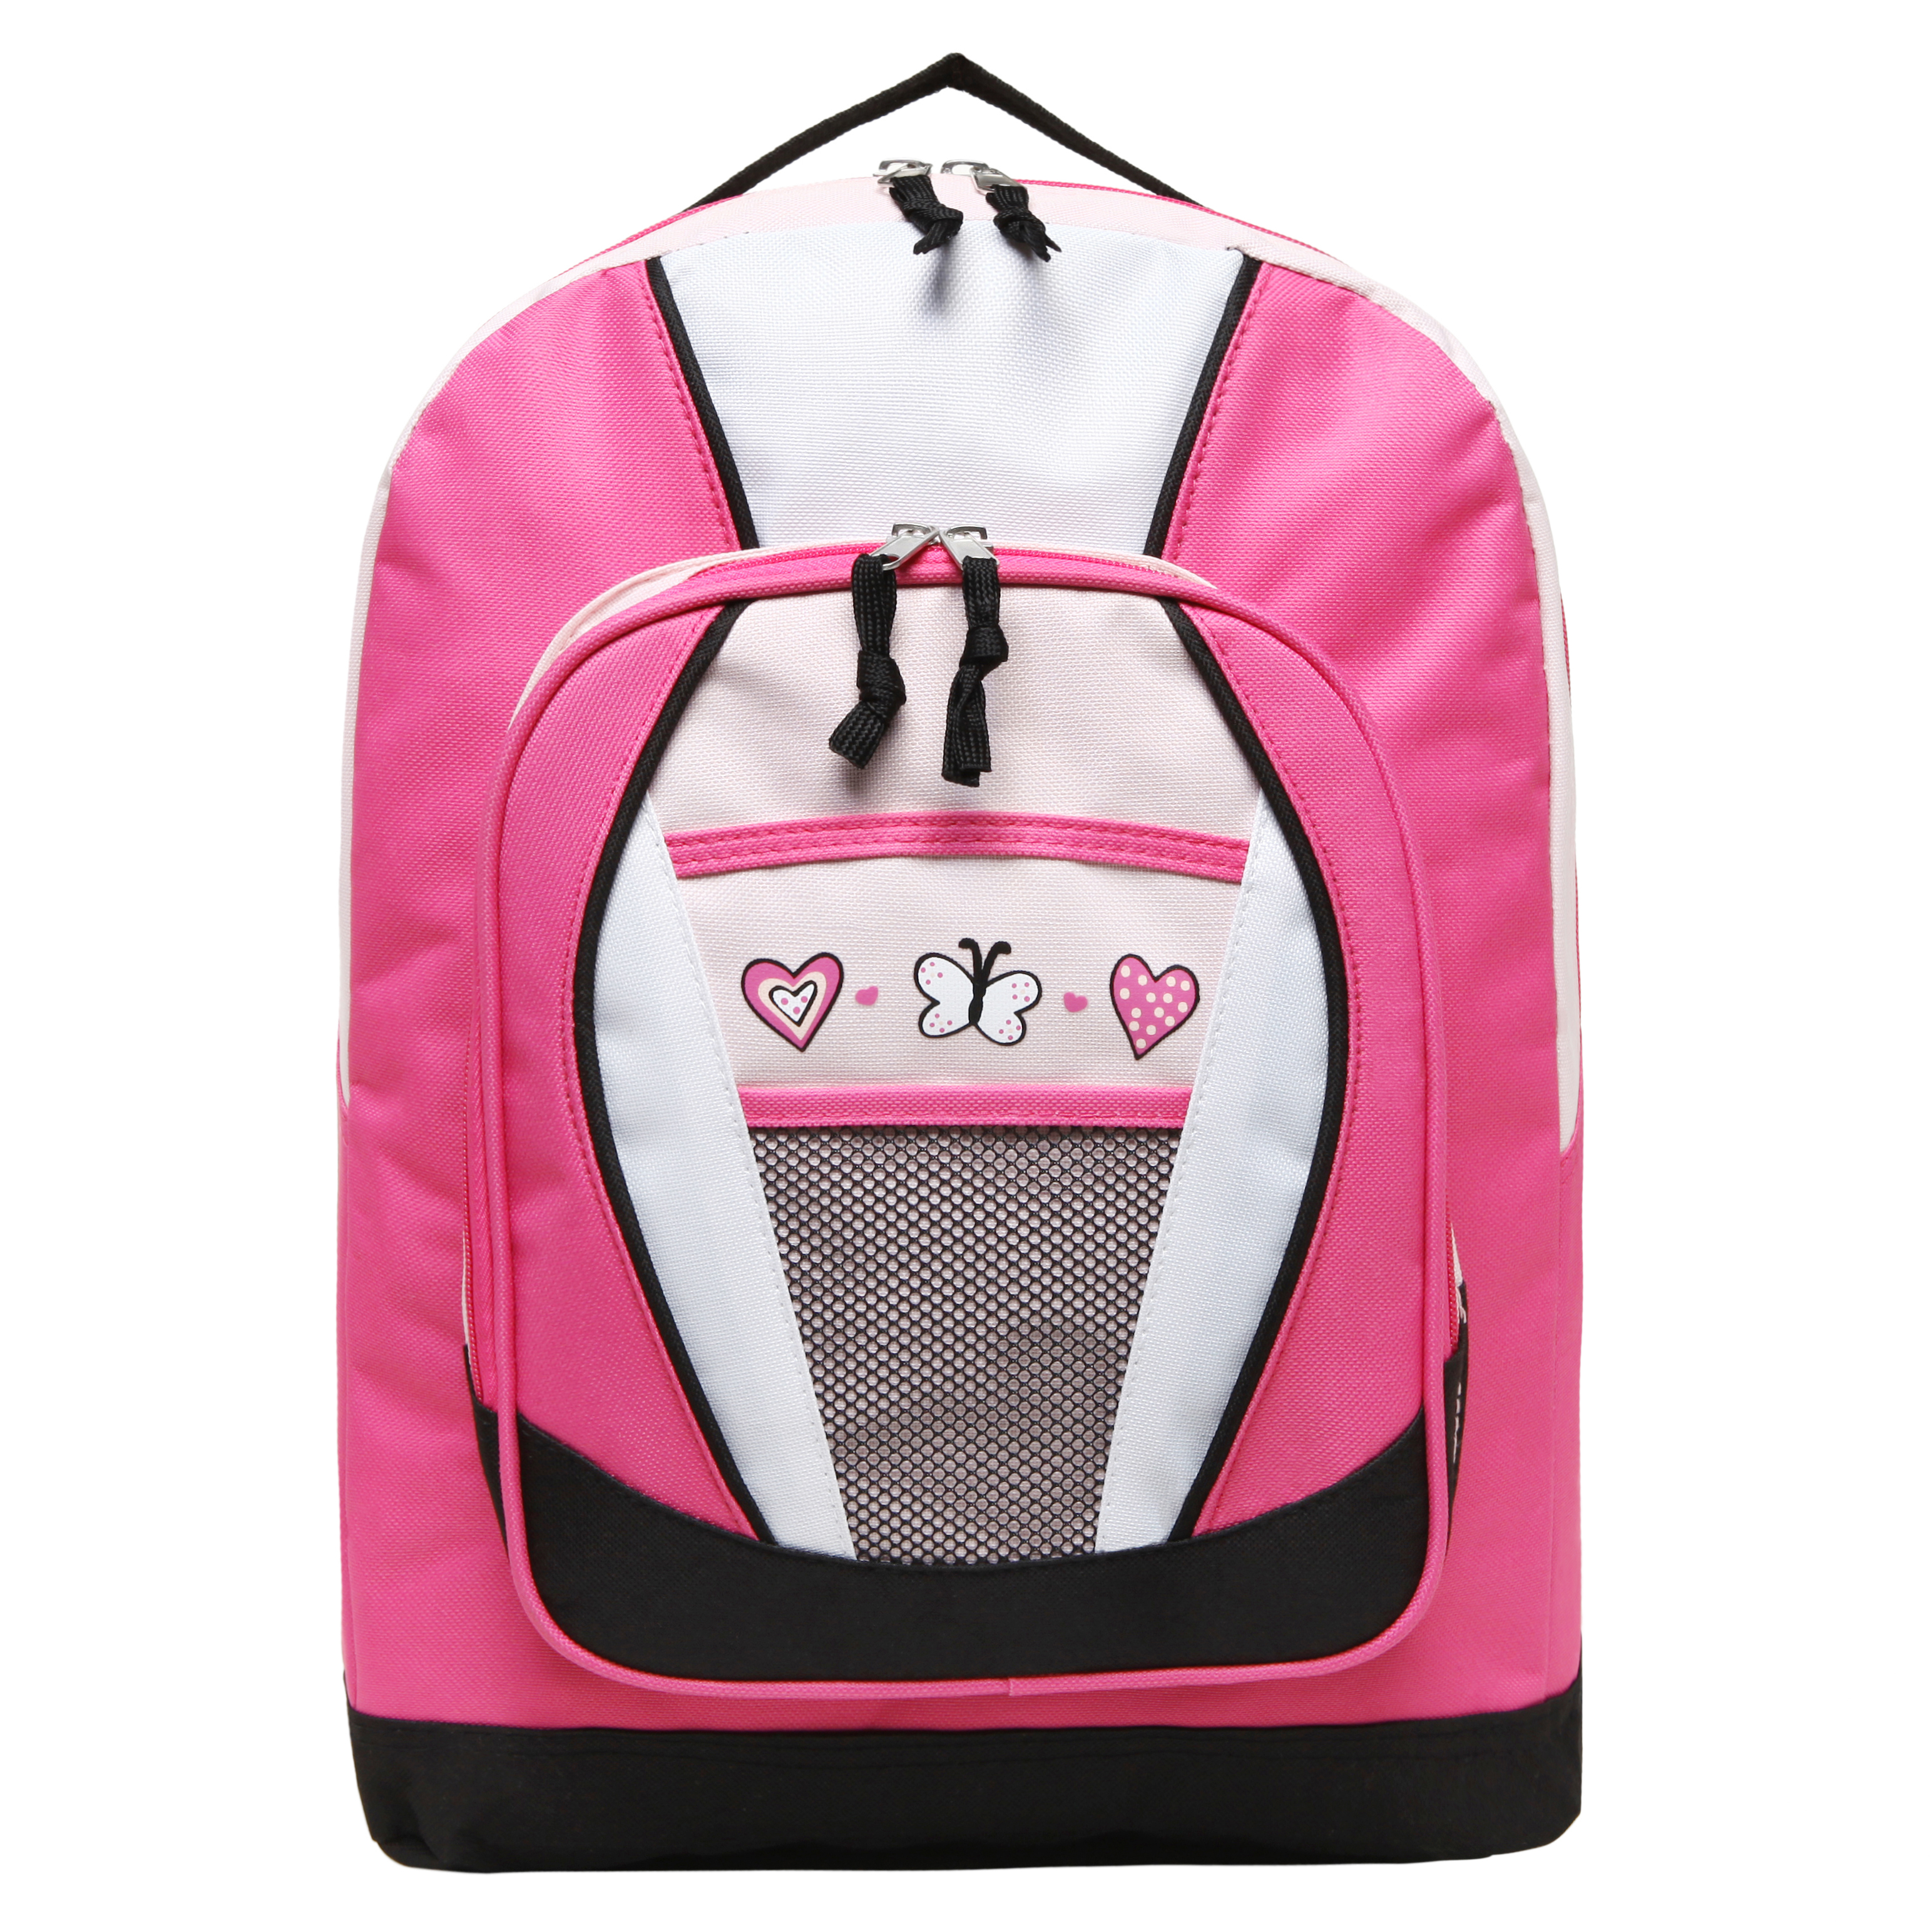 Pink Hearts and Butterflies Backpacks for Girls